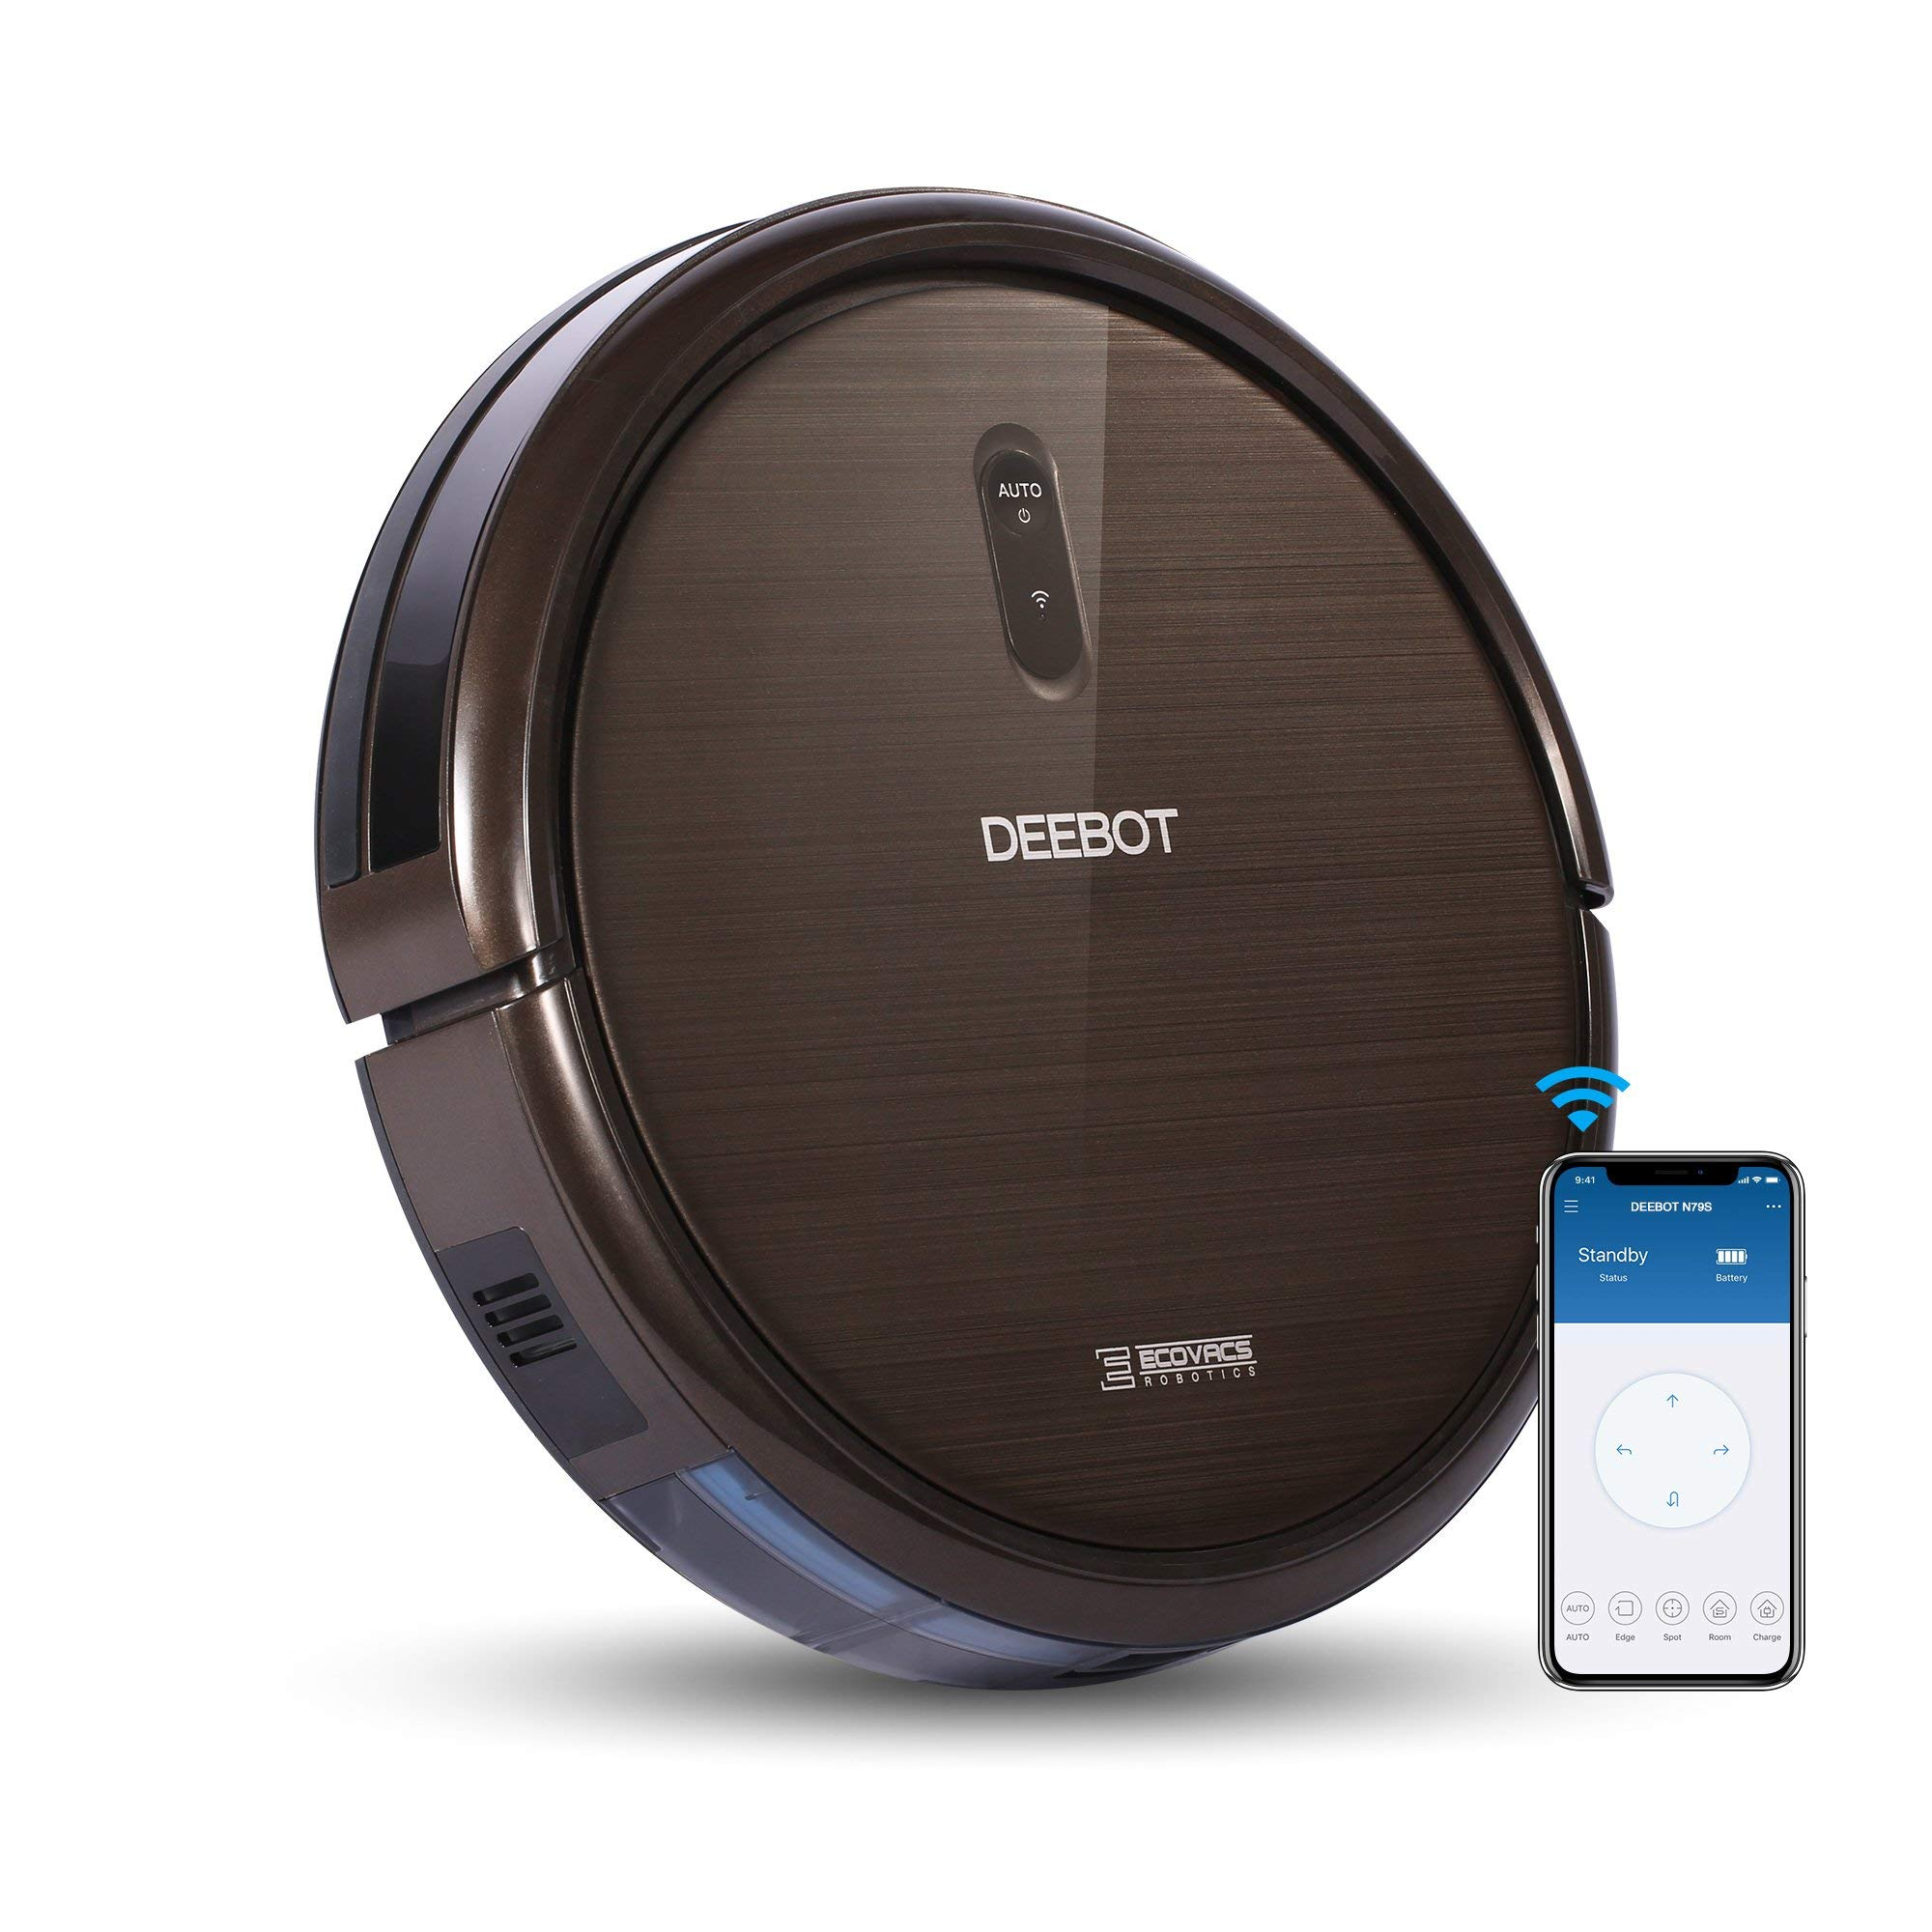 ECOVACS DEEBOT N79S Robot Vacuum Cleaner with Max Power Suction, Alexa Connectivity, App Controls, Self-Charging for Hard Surface Floors & Thin Carpets (Renewed) by ECOVACS